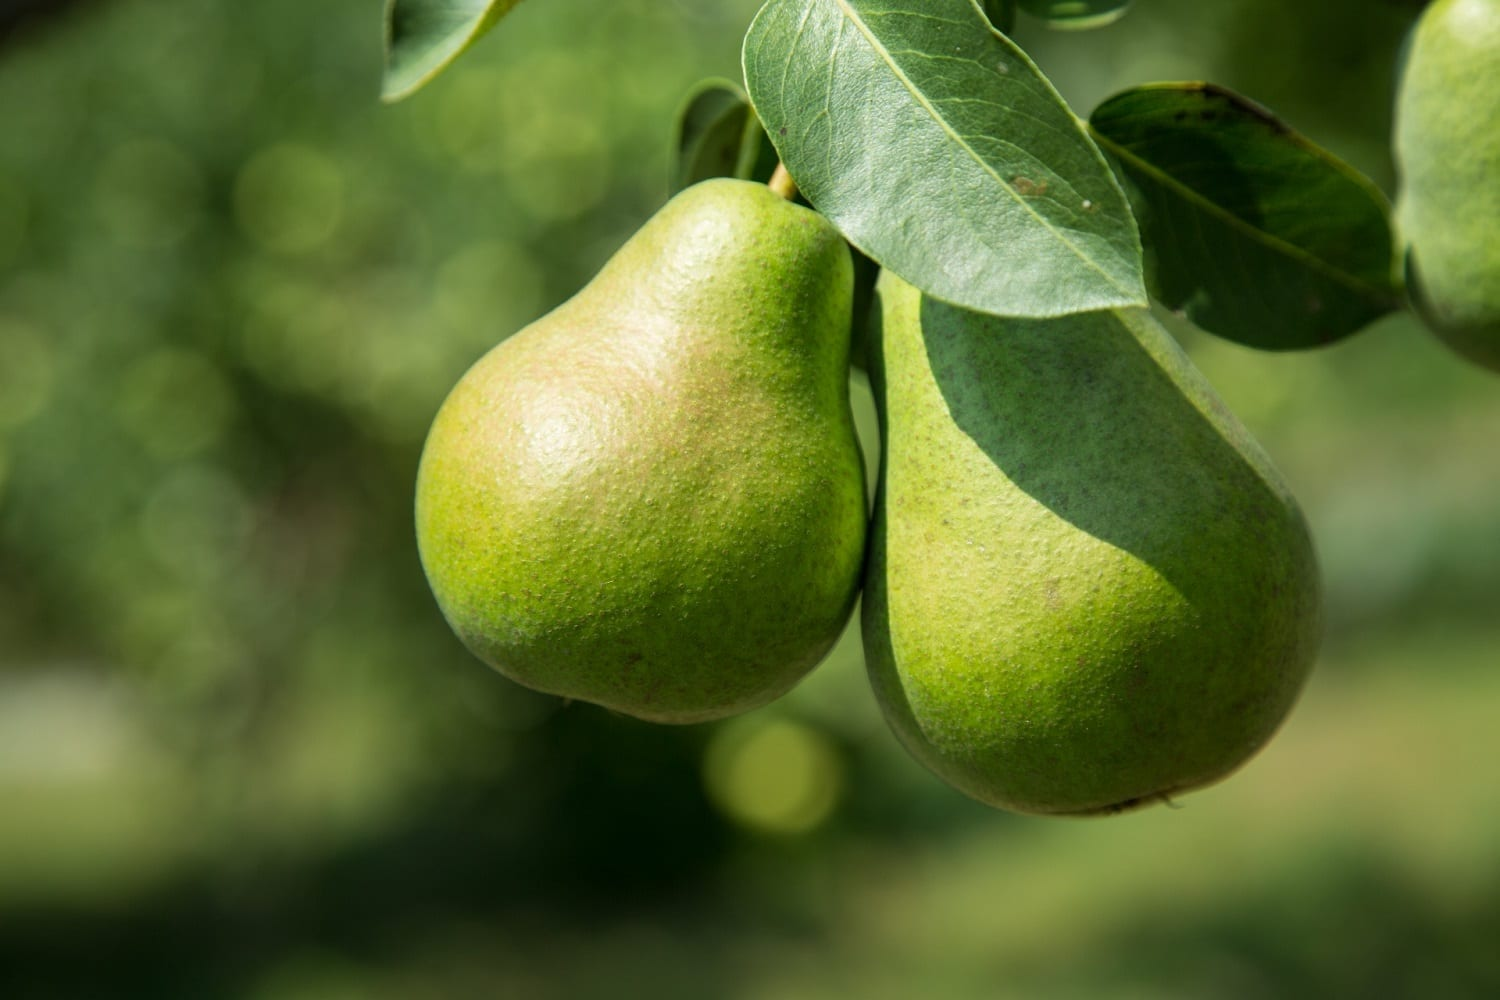 Green pears on the tree, photo credit: George Hodan